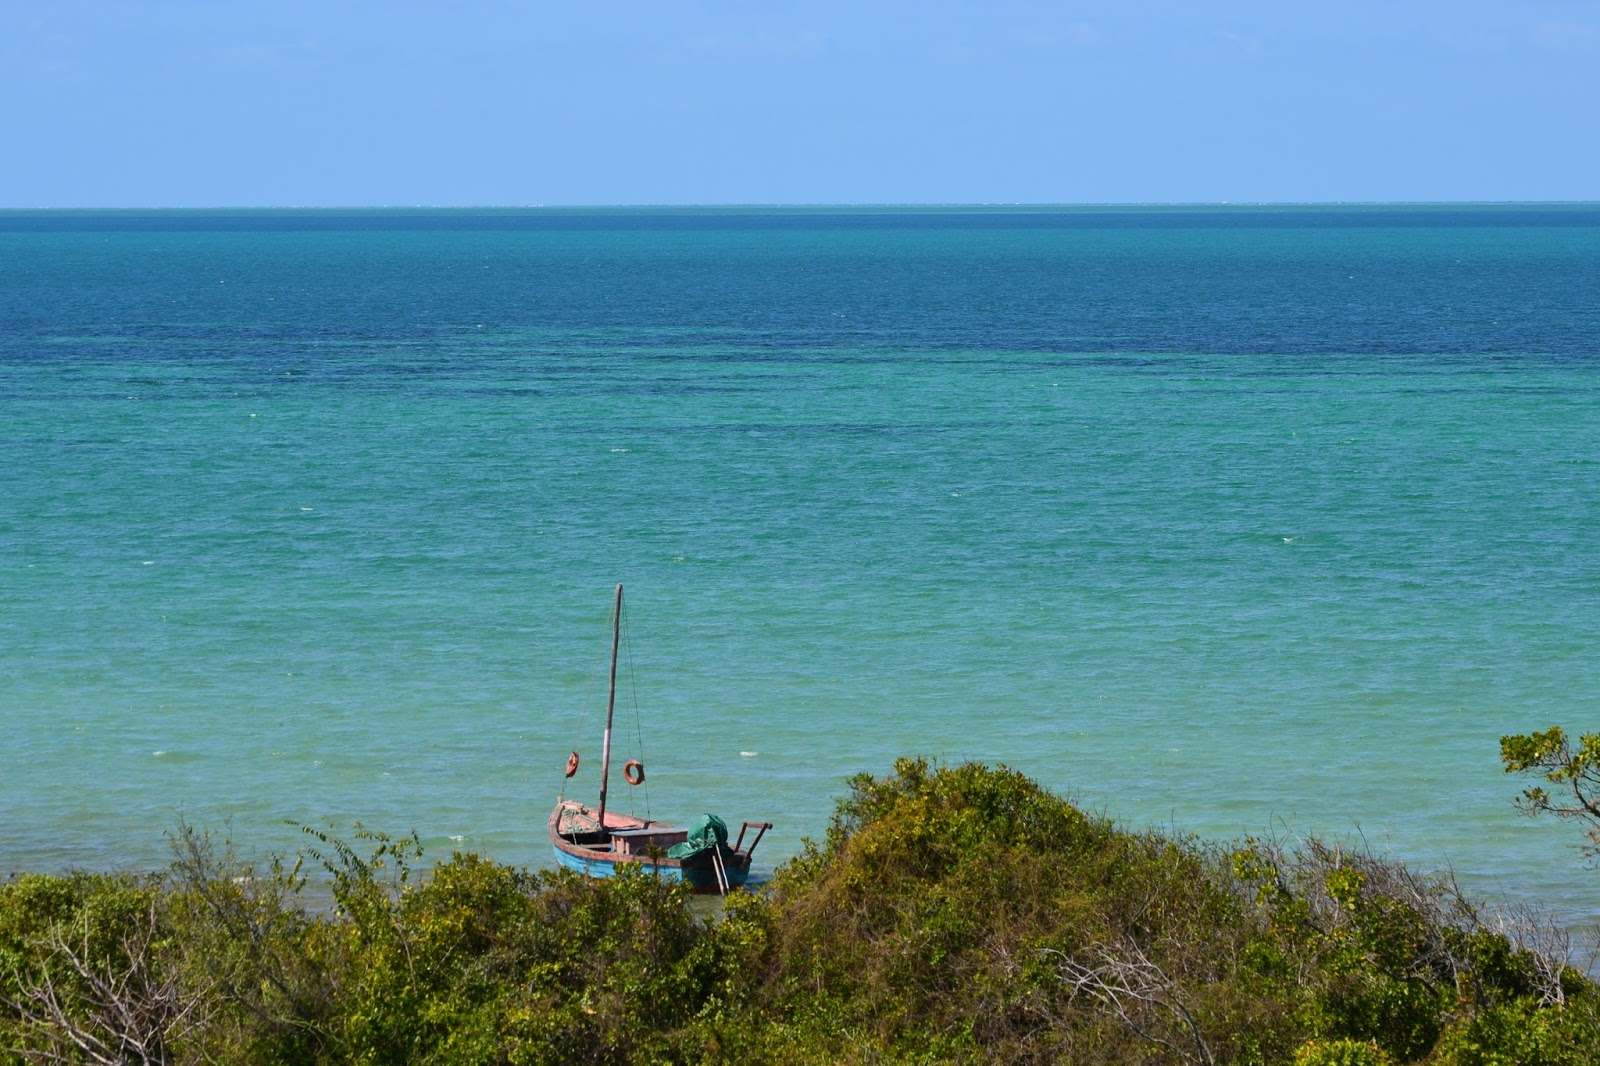 A solo travelers guide to Mozambique- A guide on things to do, what to eat and things to know